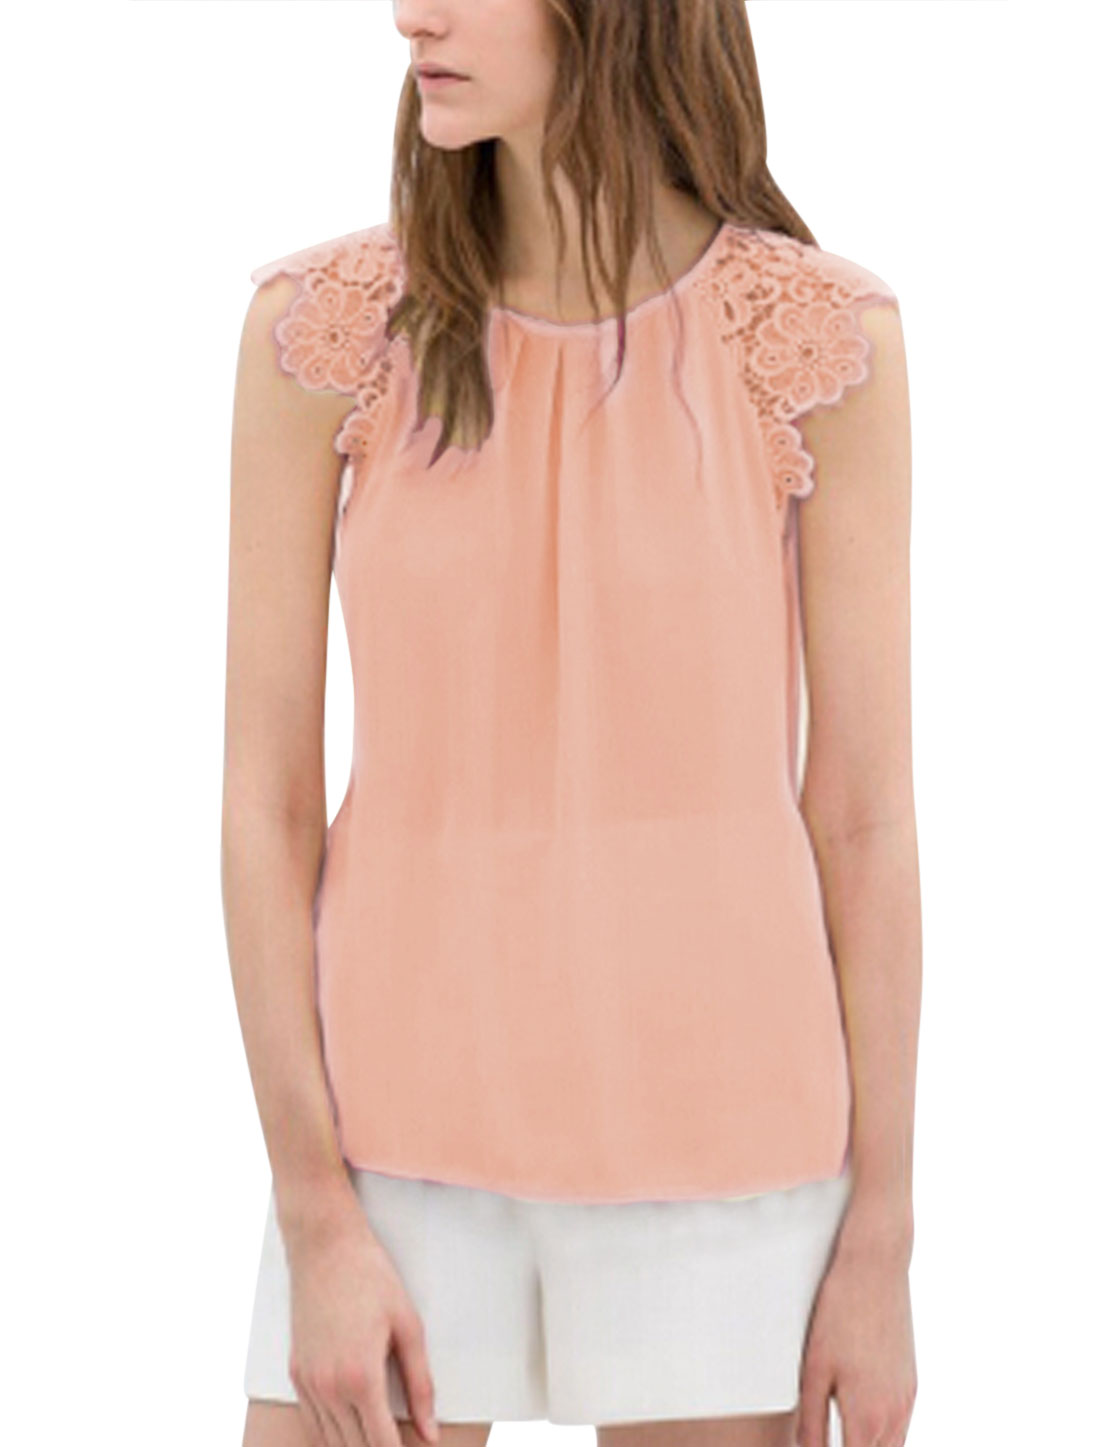 Lady Round Neck Splicing See Through Chiffon Blouse Light Pink L